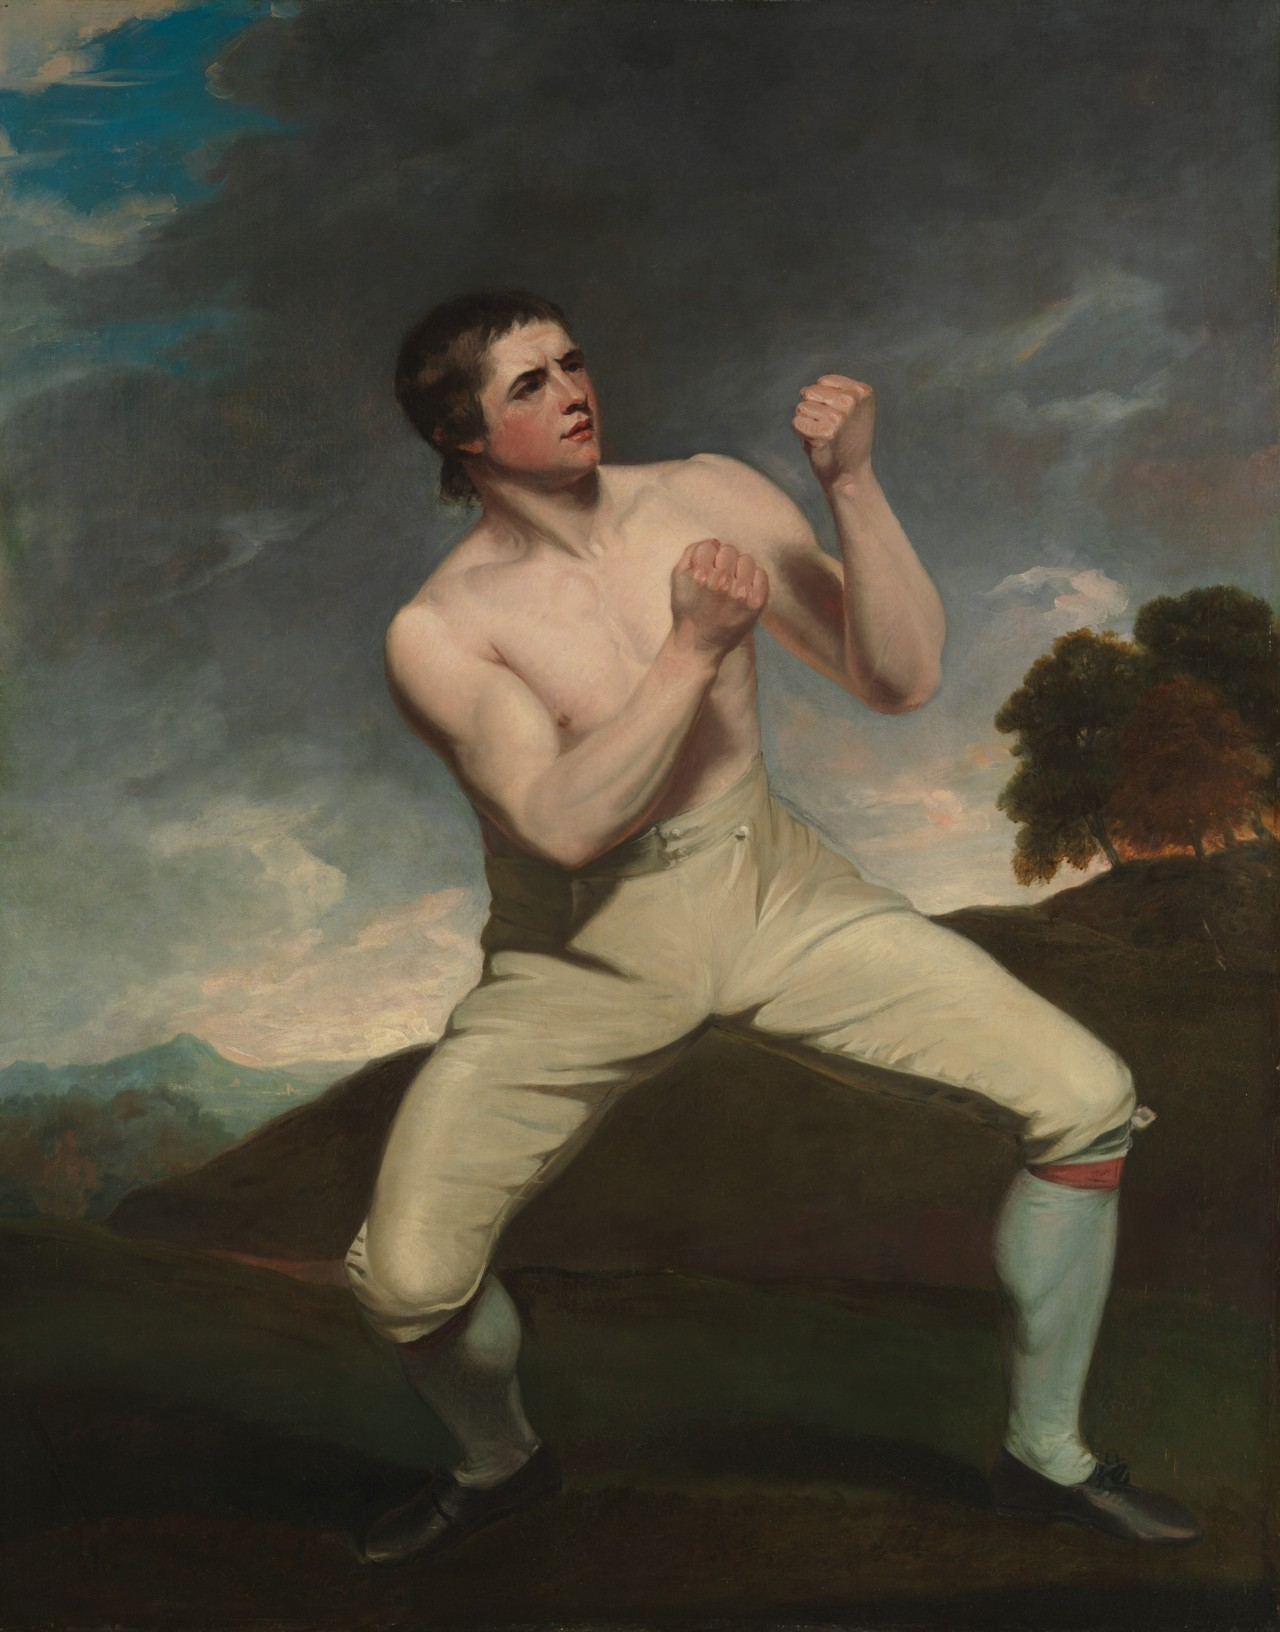 John Hoppner (1758-1810), Richard Humphreys, the Boxer